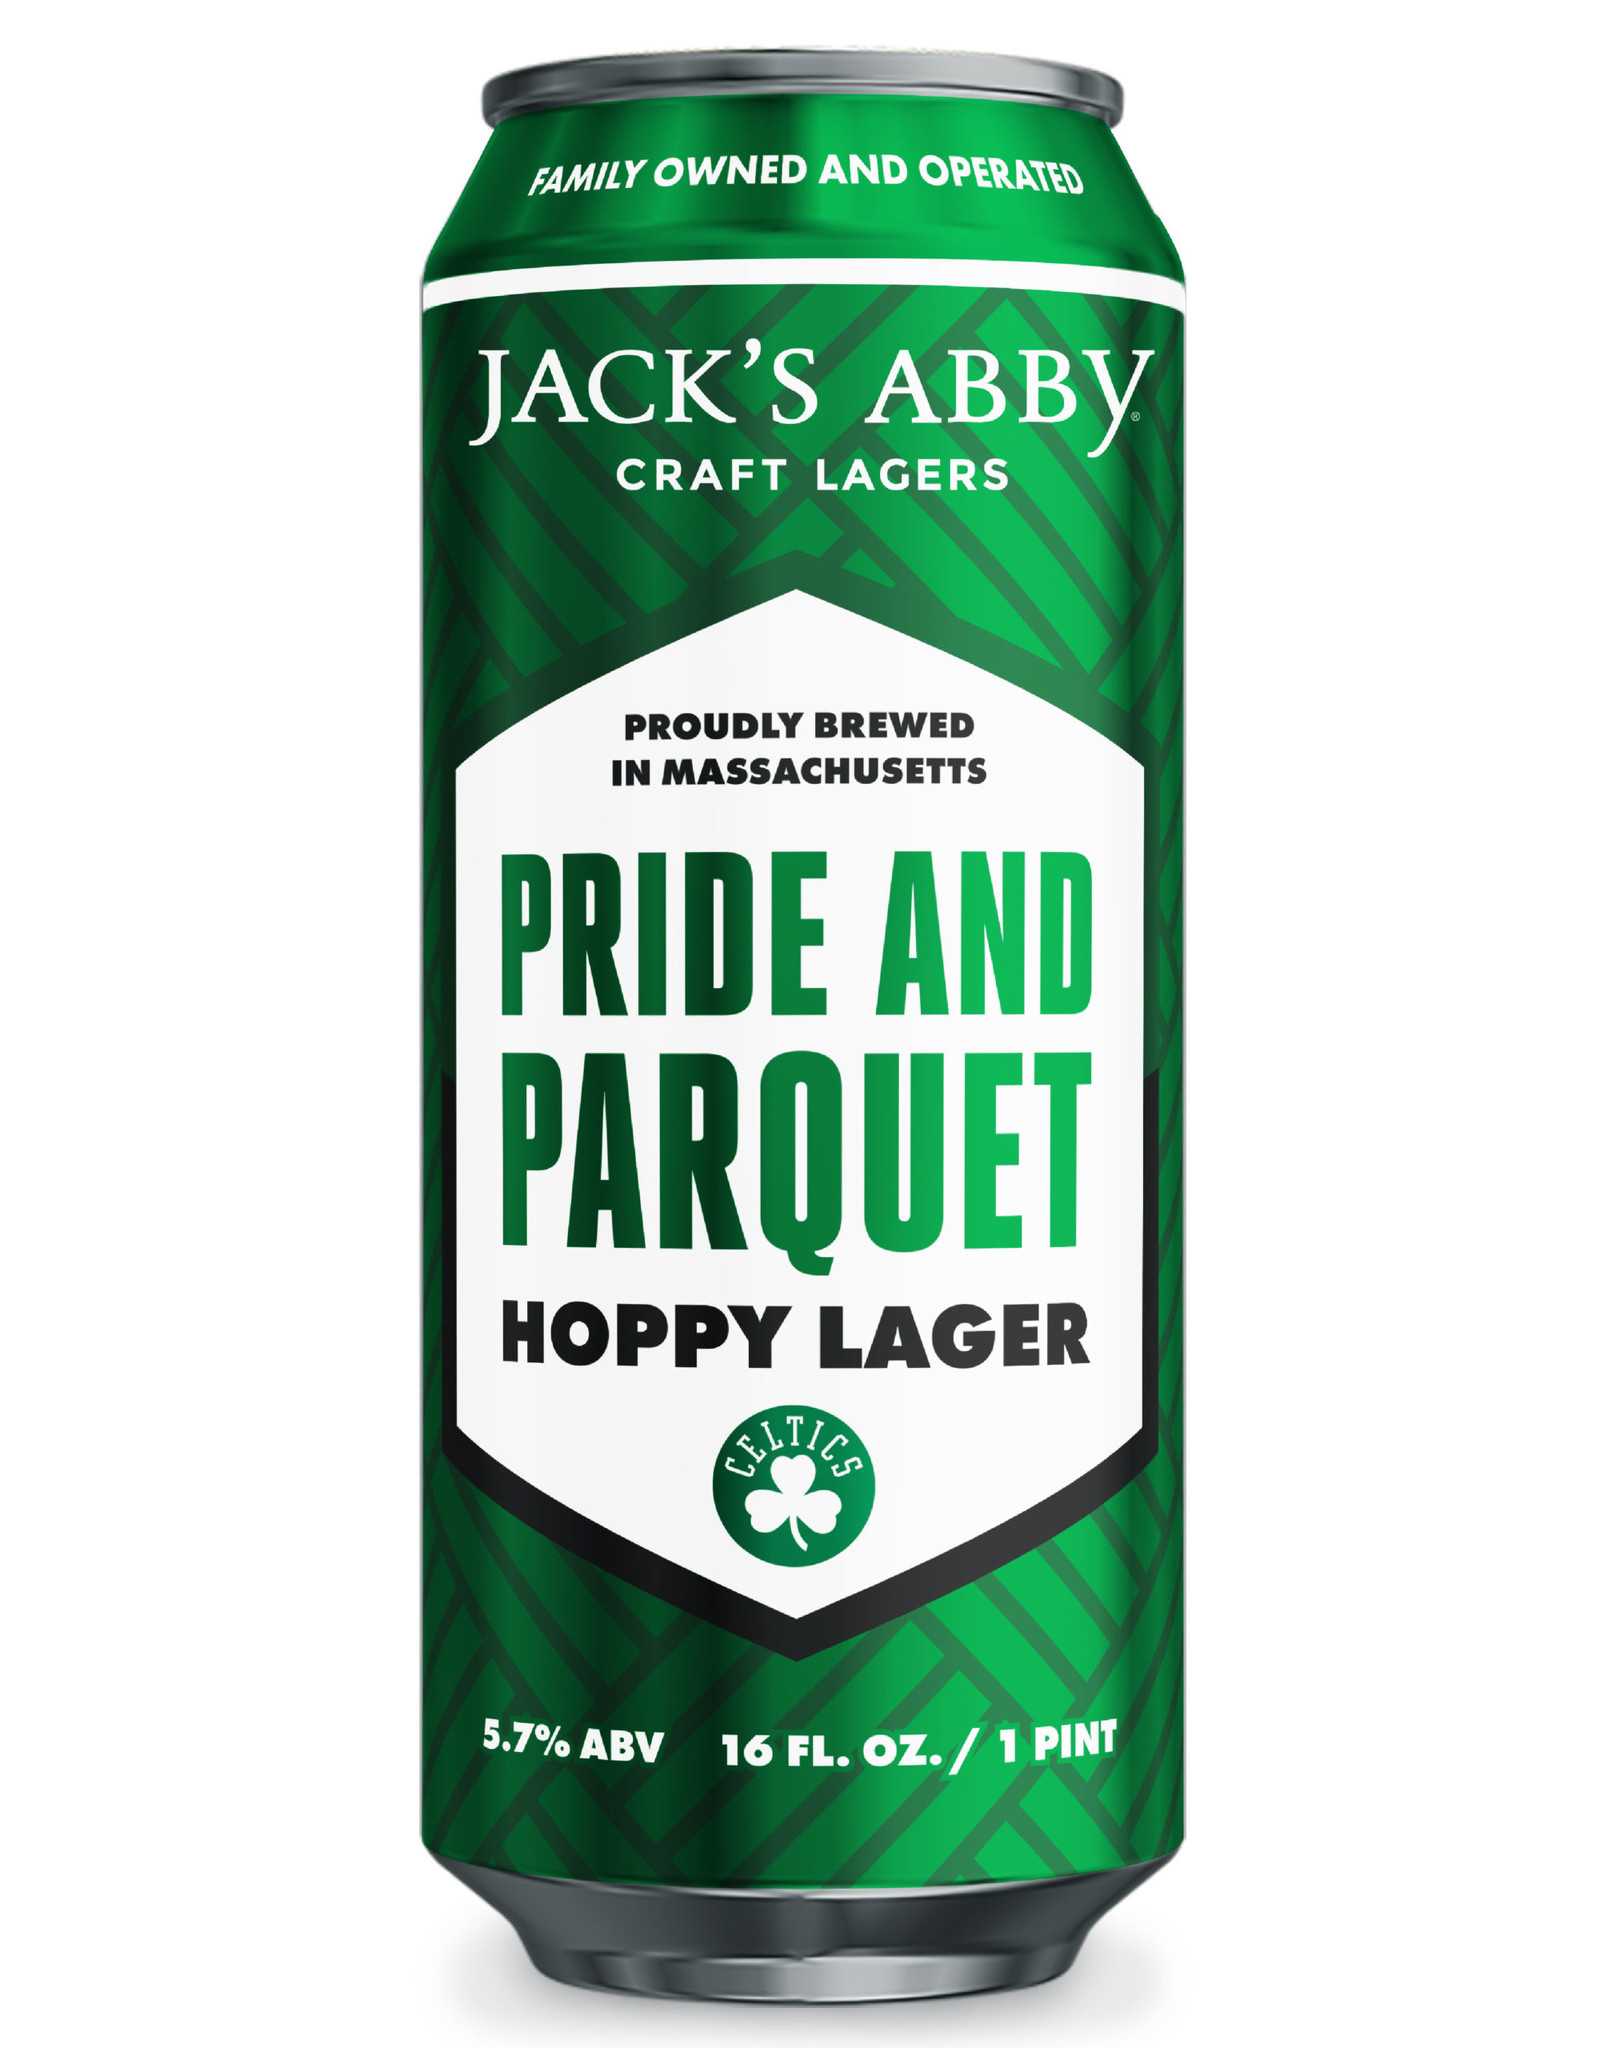 Jack's Abby Pride and Parquet